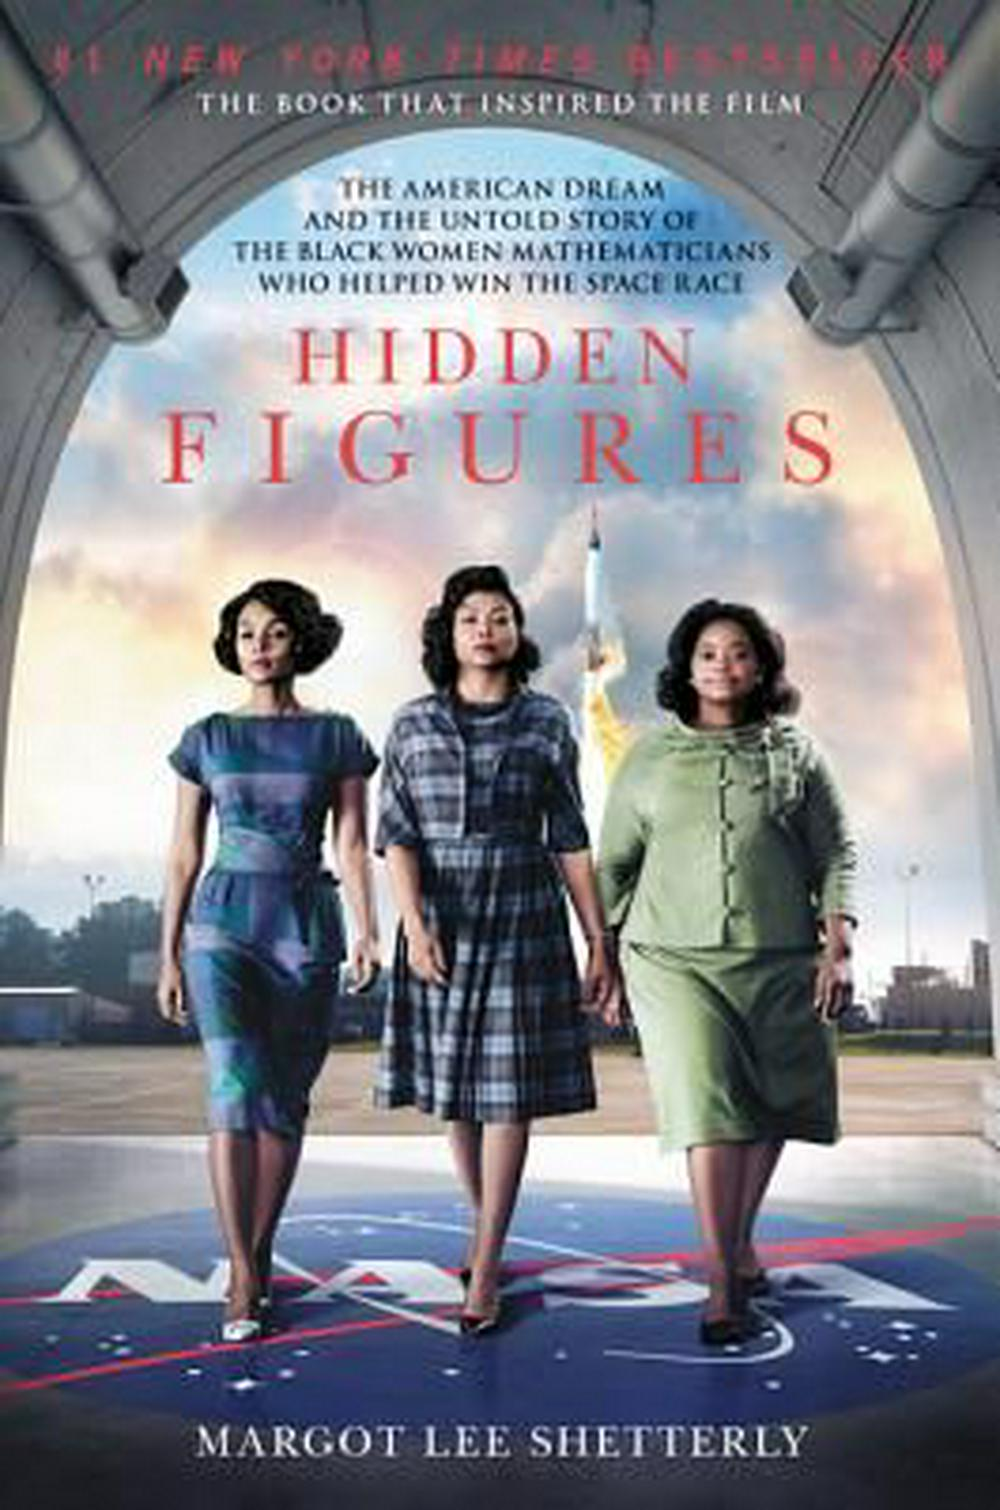 Hidden Figures by Margot Lee Shetterly, ISBN: 9780062363602